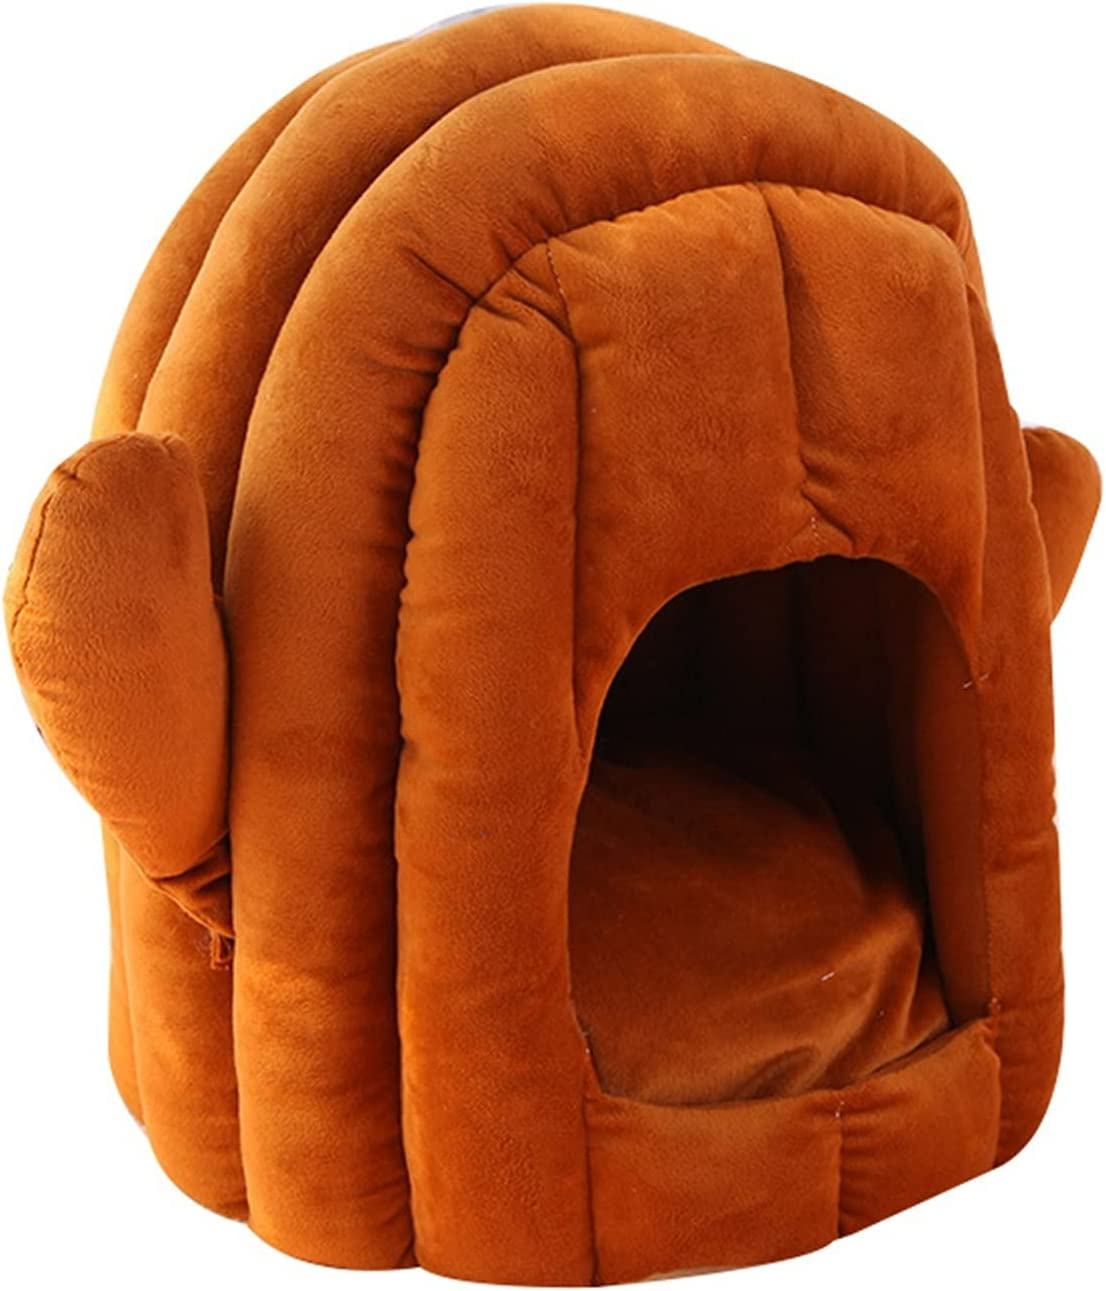 Zzalo Cactus Kennel Cartoon sold out Removable Washable New Shipping Free Shipping and Cat Pe